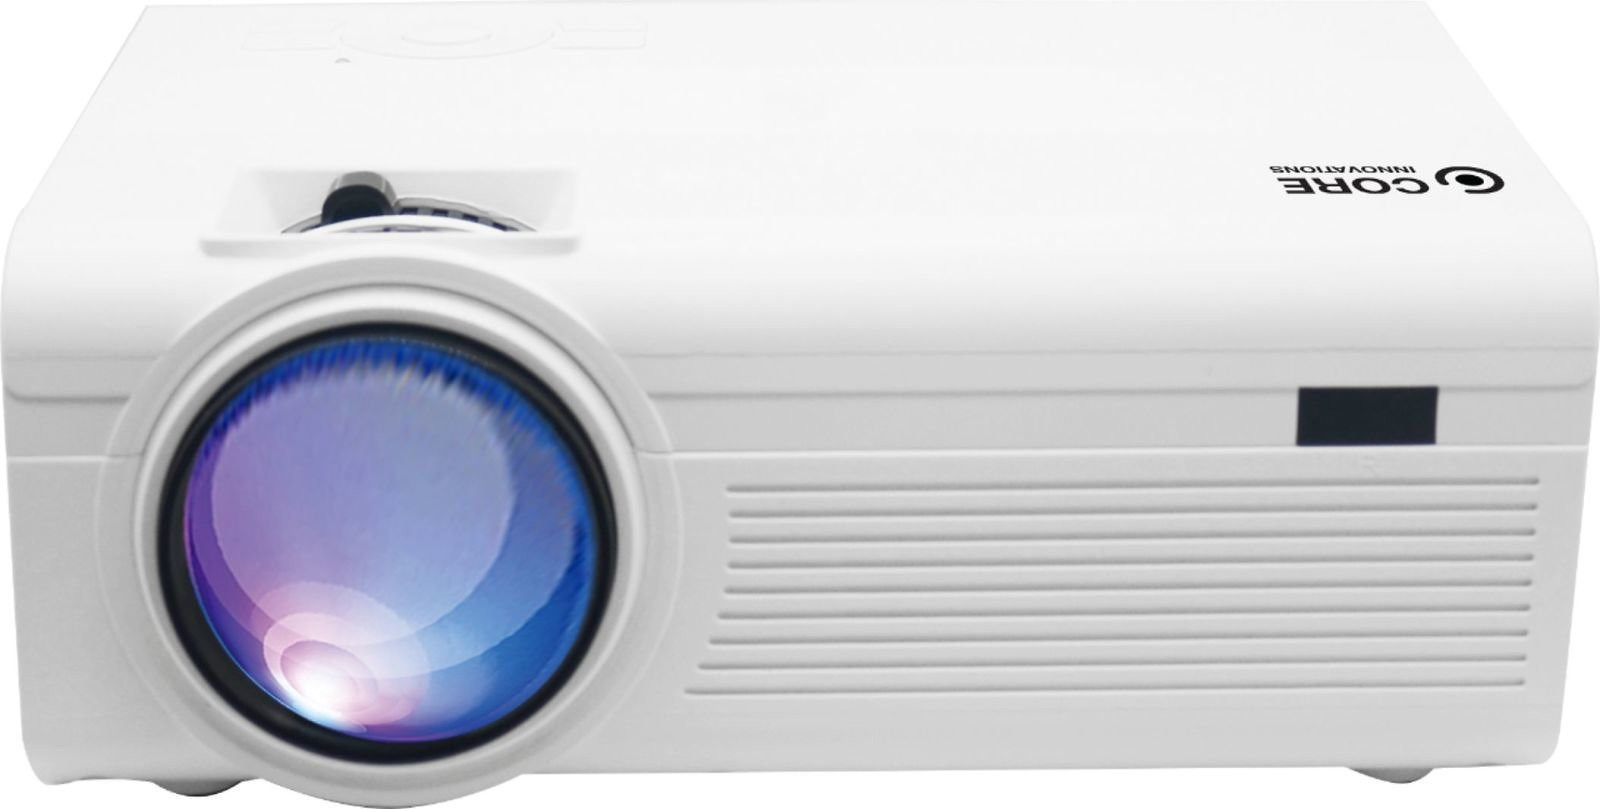 "Core Innovations 150"" LCD Home Theater Projector + F/S"